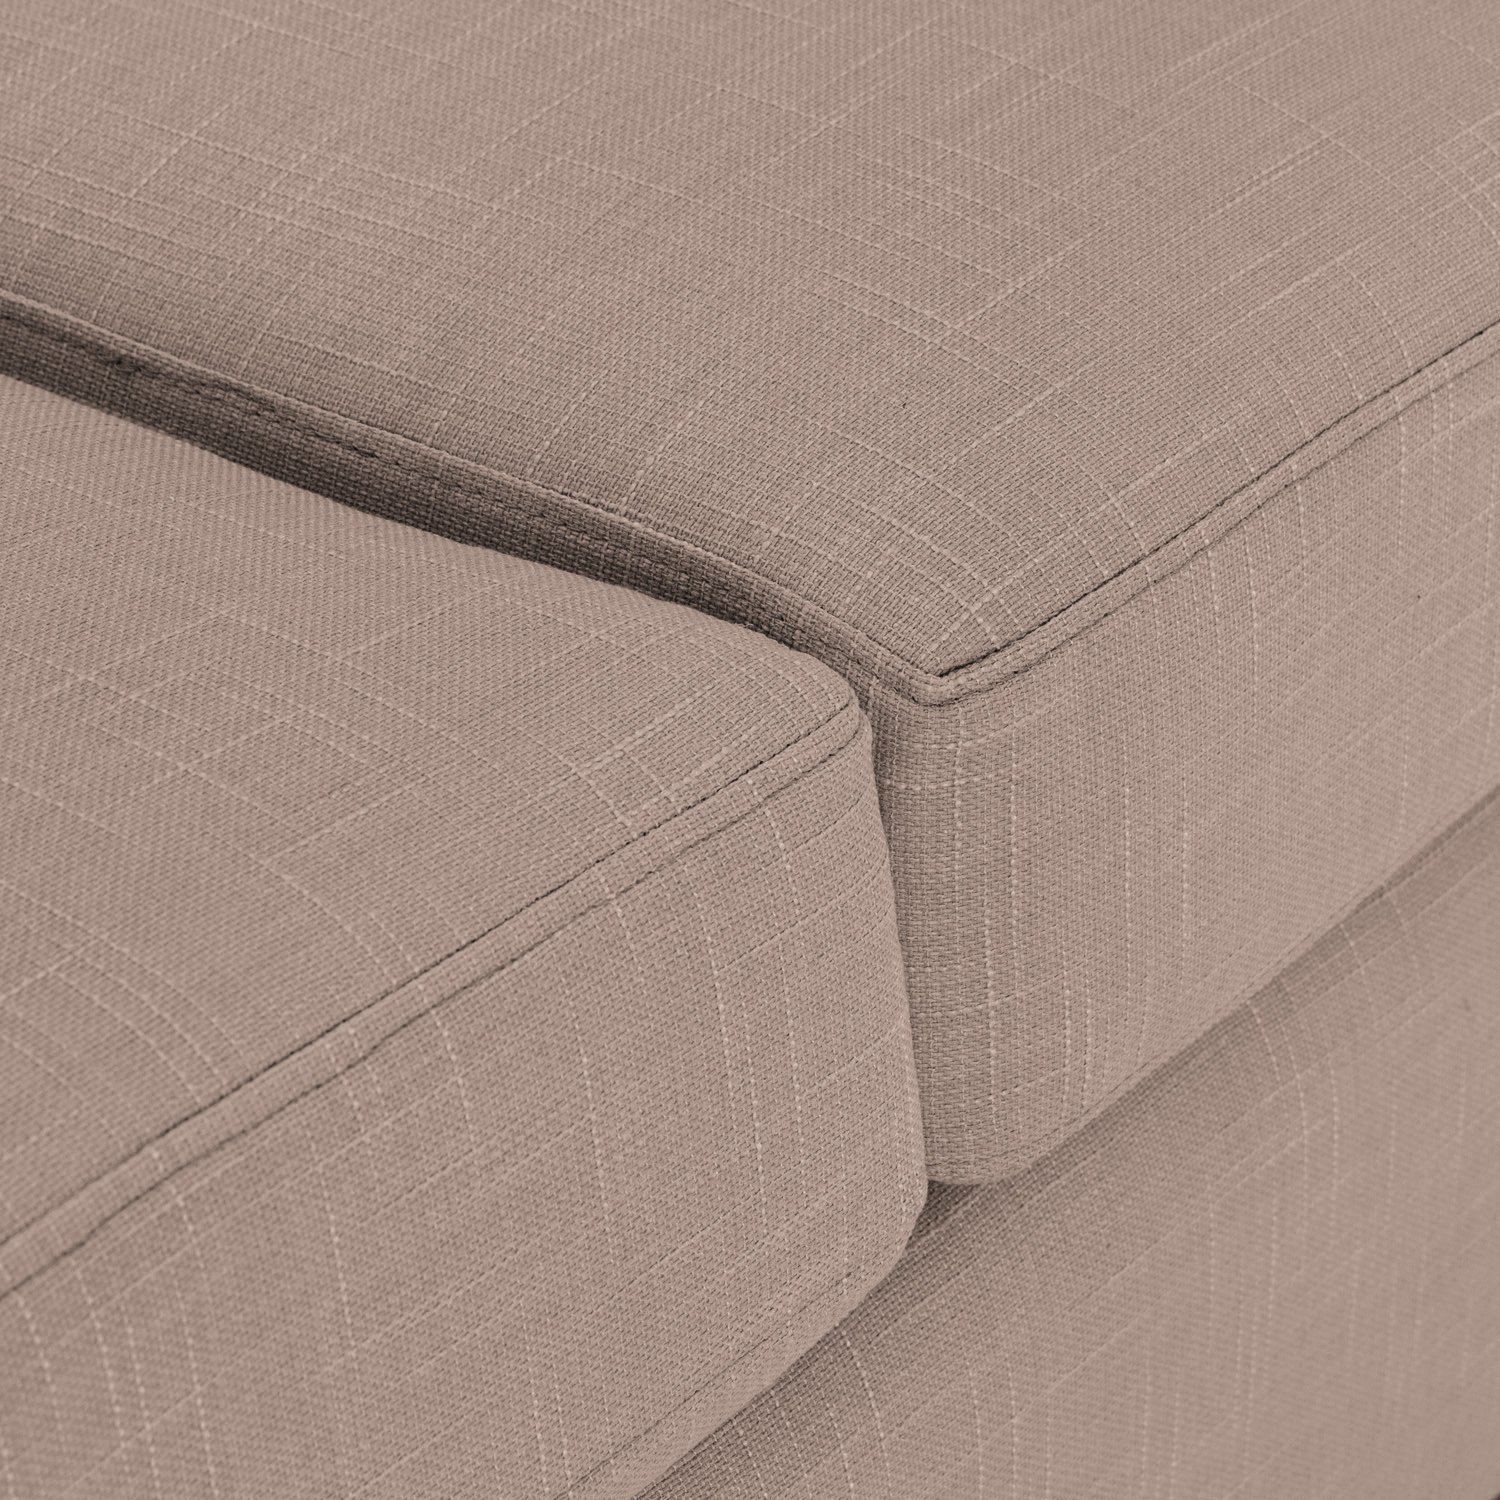 Sofa Bed Rounded arms in Emporio Stone Fabric